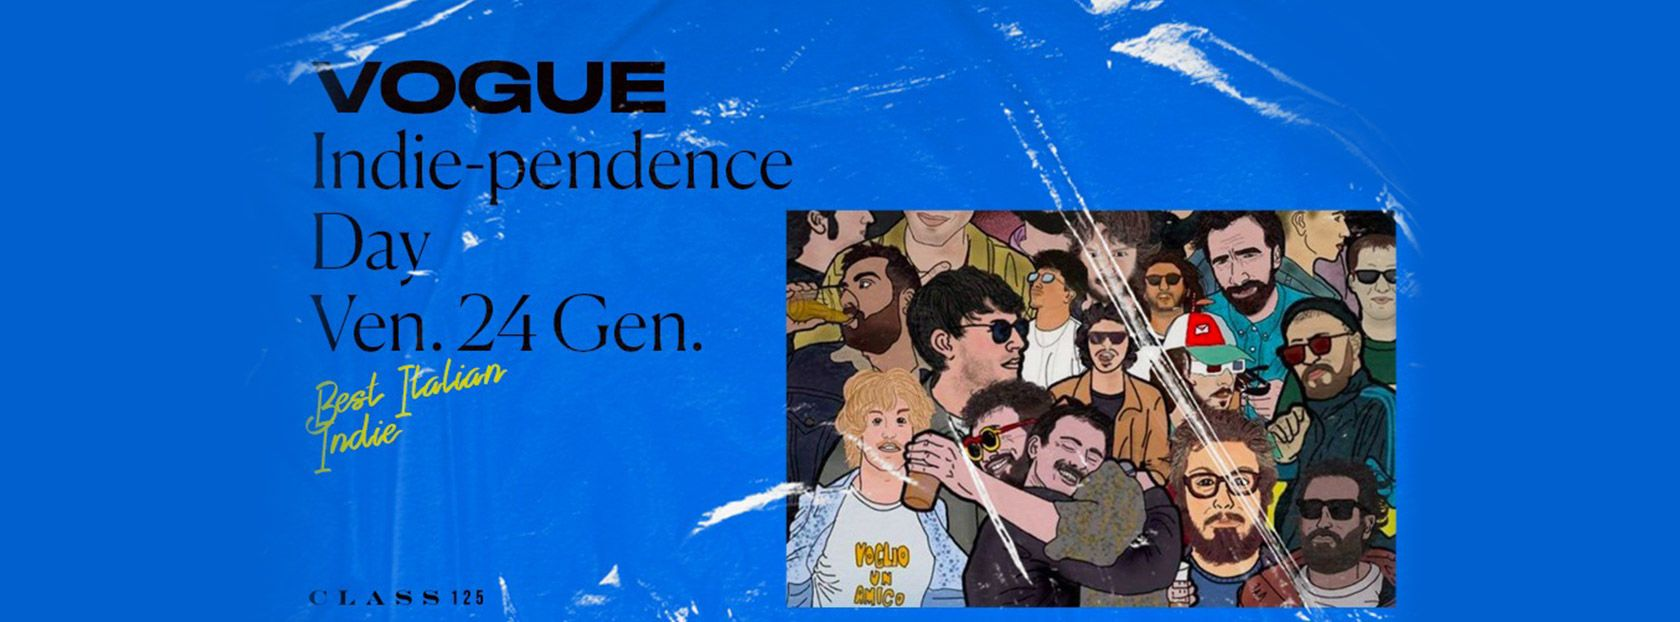 VOGUE party | Indie-Pendence Day